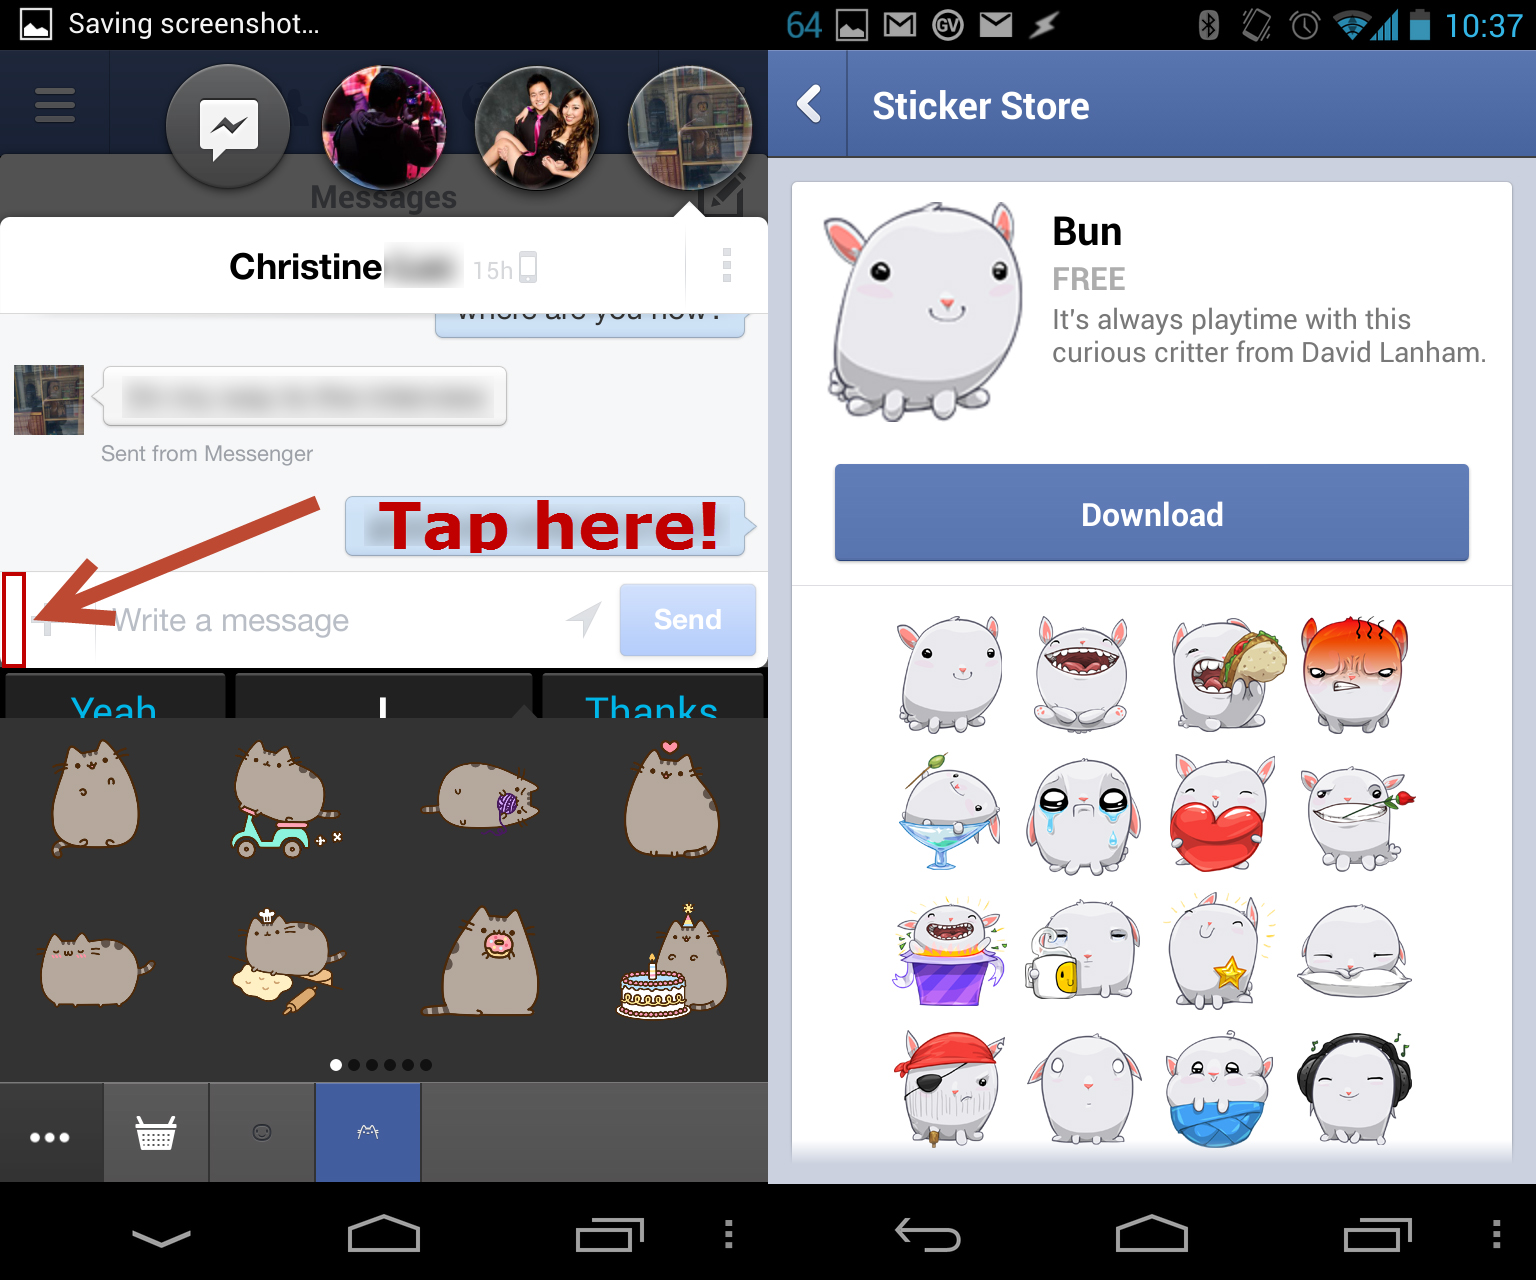 Facebook Messenger for Android has hidden stickers